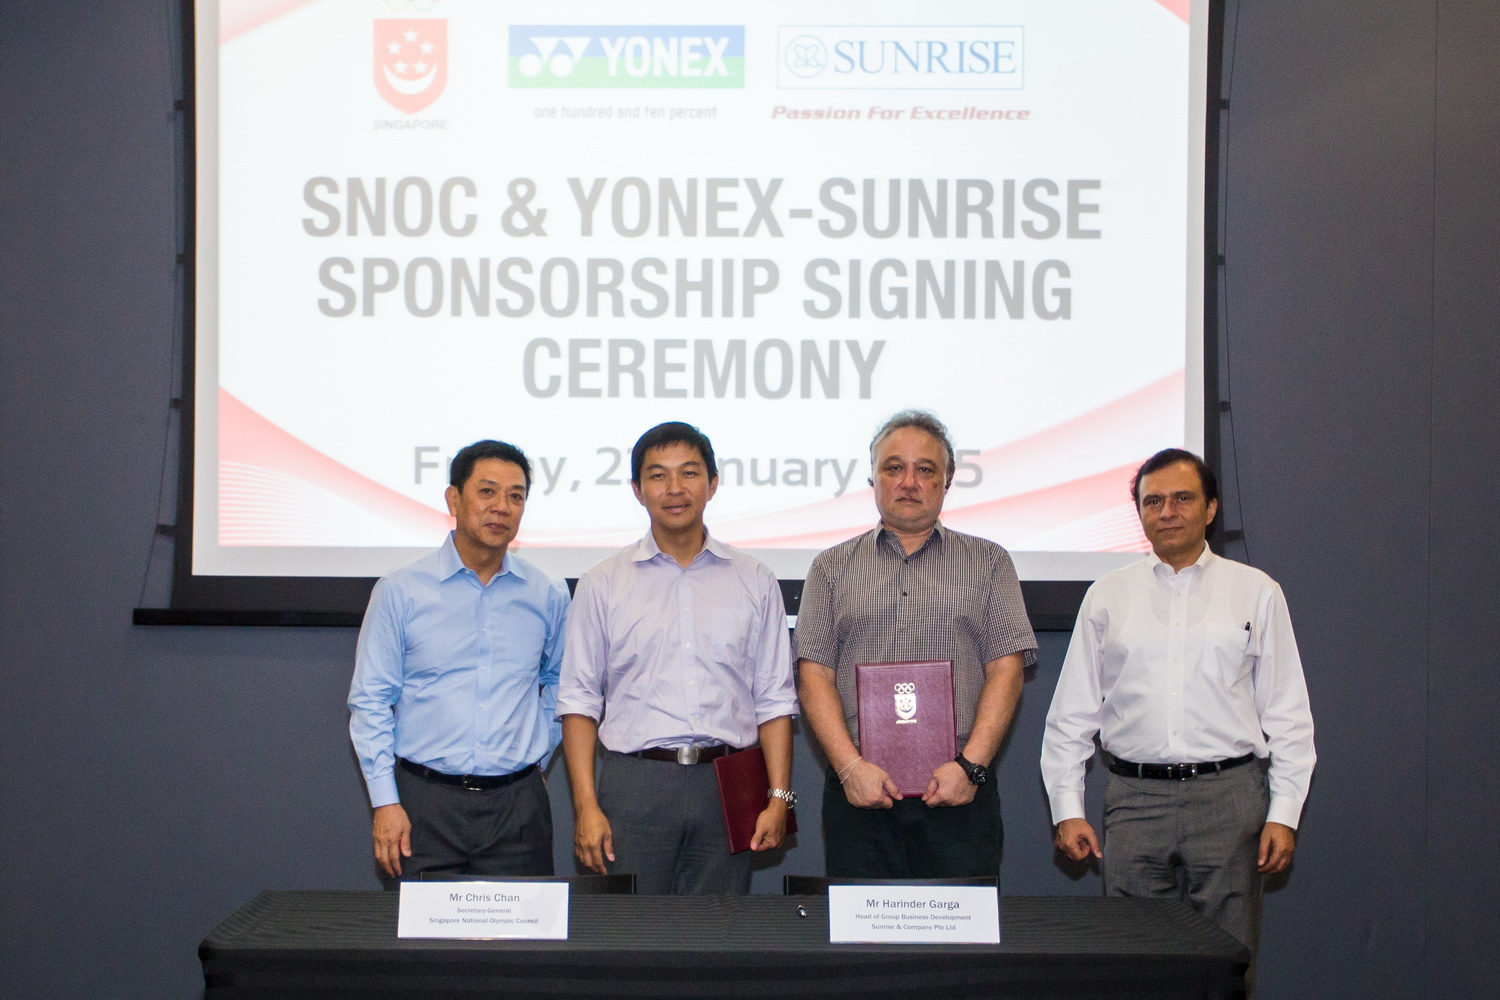 The SNOC have announced a six-year extension to their deal with Yonex distributors Sunrise ©SNOC